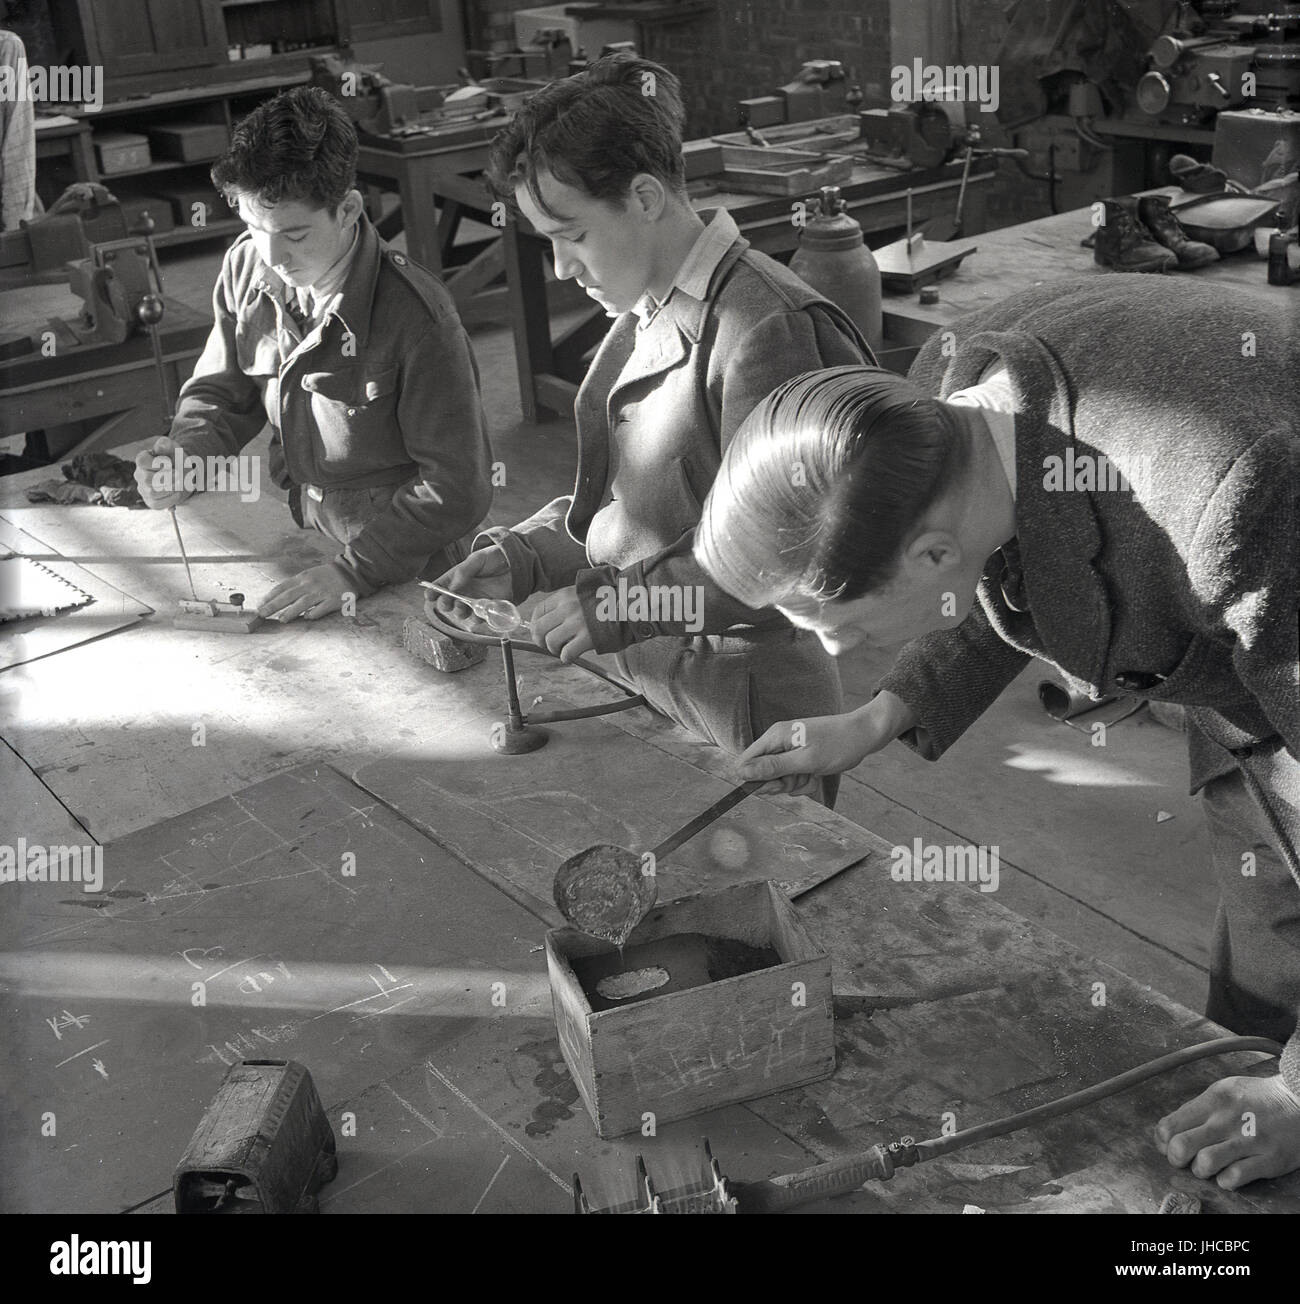 1950s, historical, England, UK, two male students wearing army uniform and teacher doing metal work in a tool shop Stock Photo